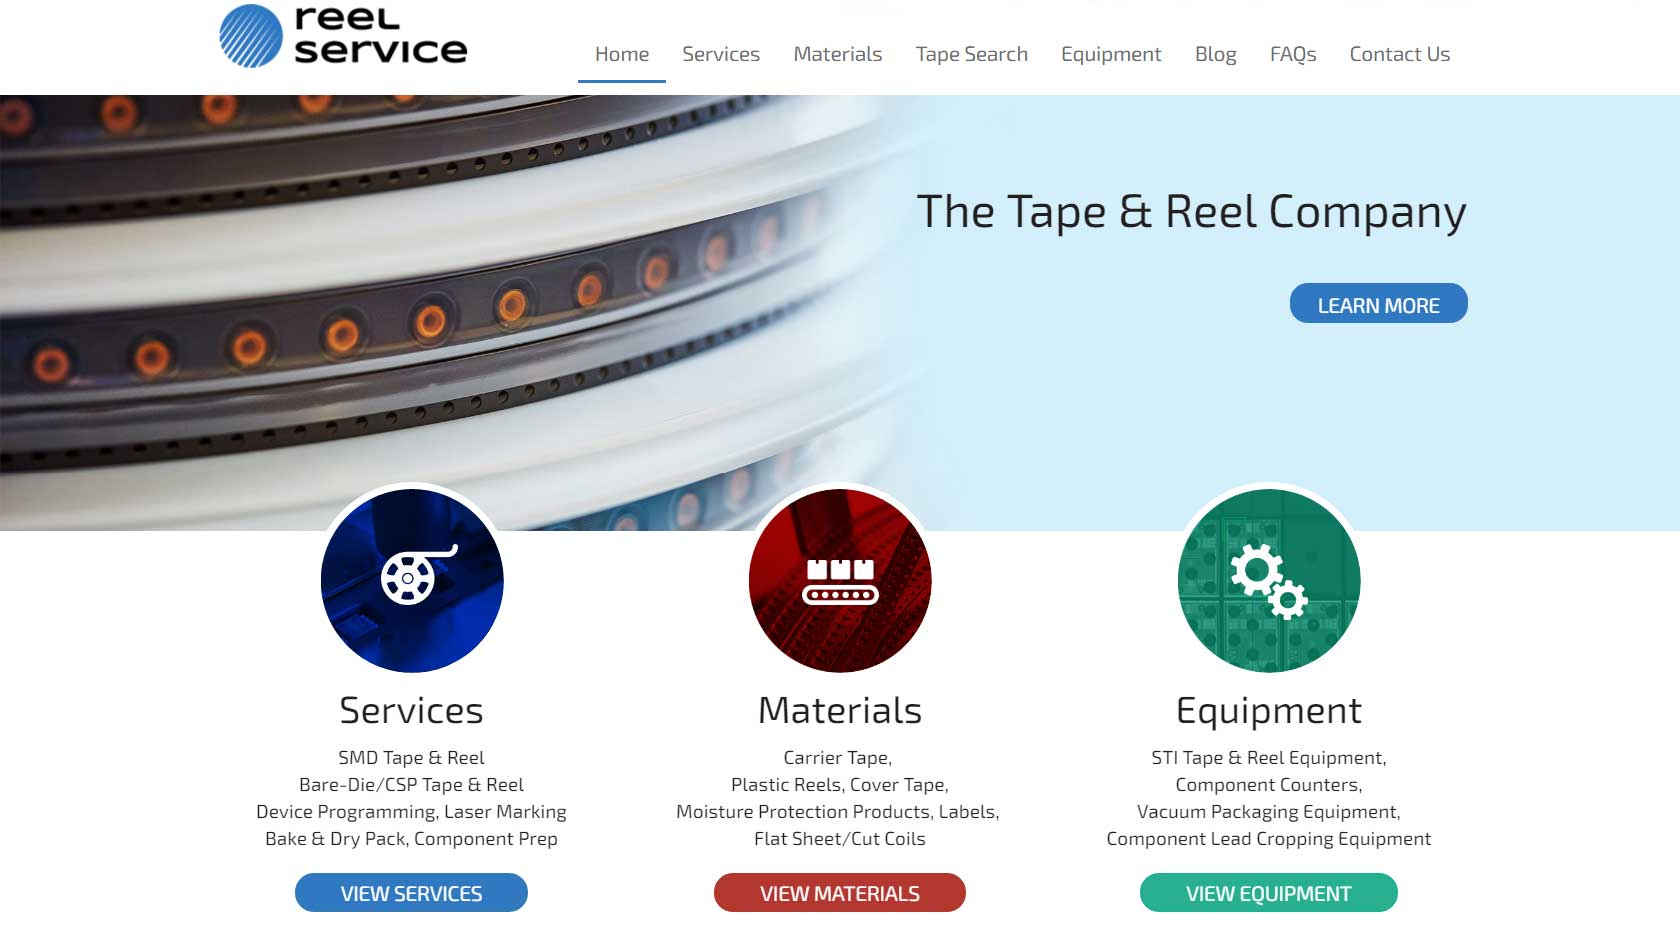 reelservice.com home page screen capture